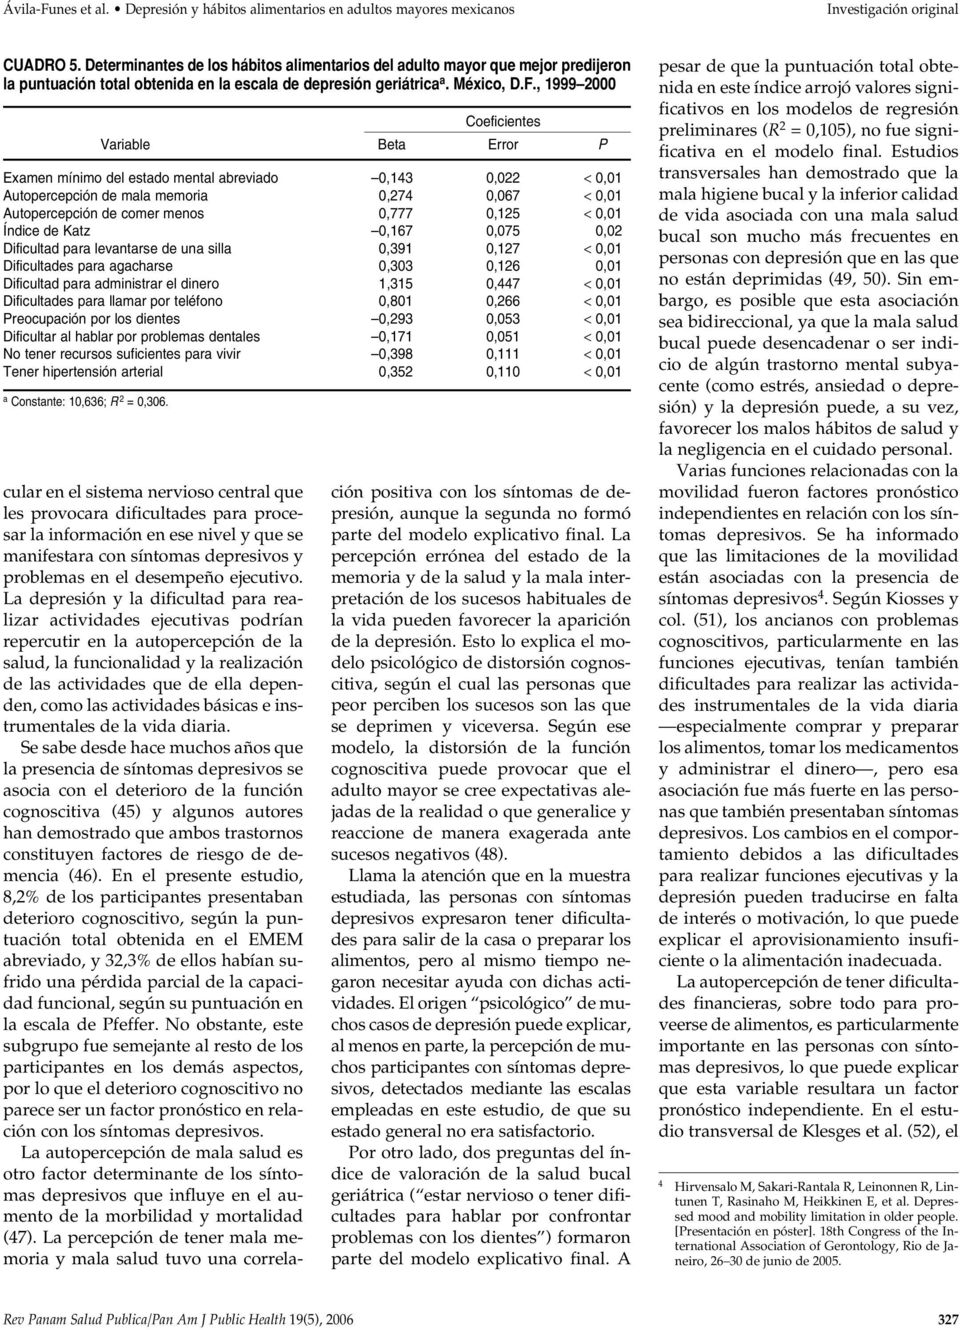 , 1999 2000 Coeficientes Variable Beta Error P Examen mínimo del estado mental abreviado 0,143 0,022 < 0,01 Autopercepción de mala memoria 0,274 0,067 < 0,01 Autopercepción de comer menos 0,777 0,125